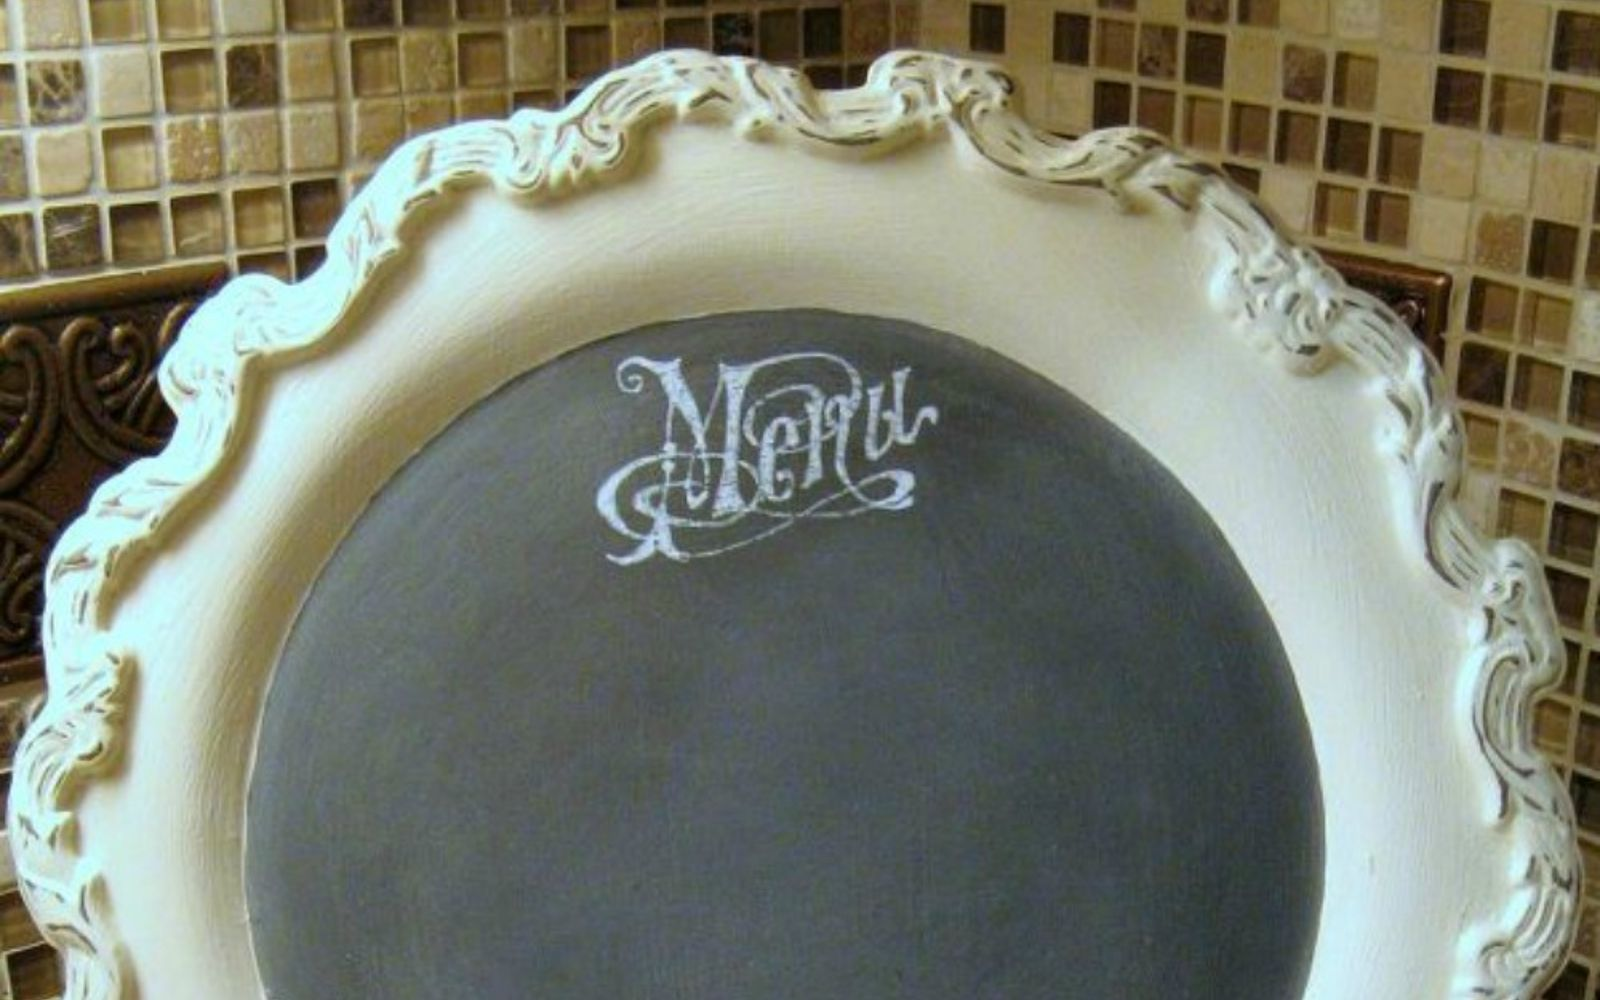 s 14 amazing things you can do with dollar store appetizer dishes, Revamp them into menu plates